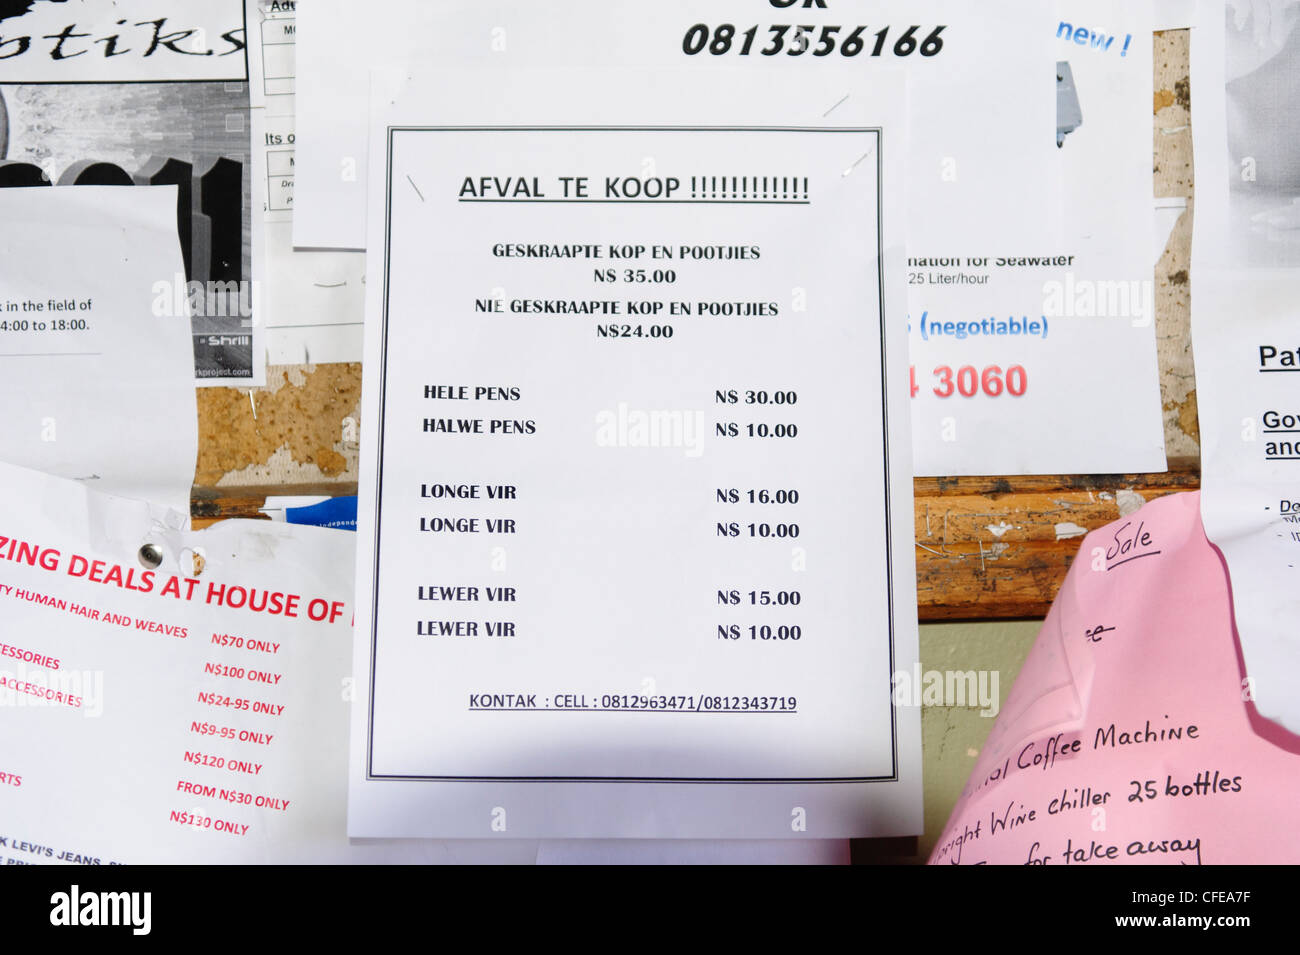 Notice board in a supermarket adverting offal, in Afrikaans language. Luderitz, Namibia. - Stock Image